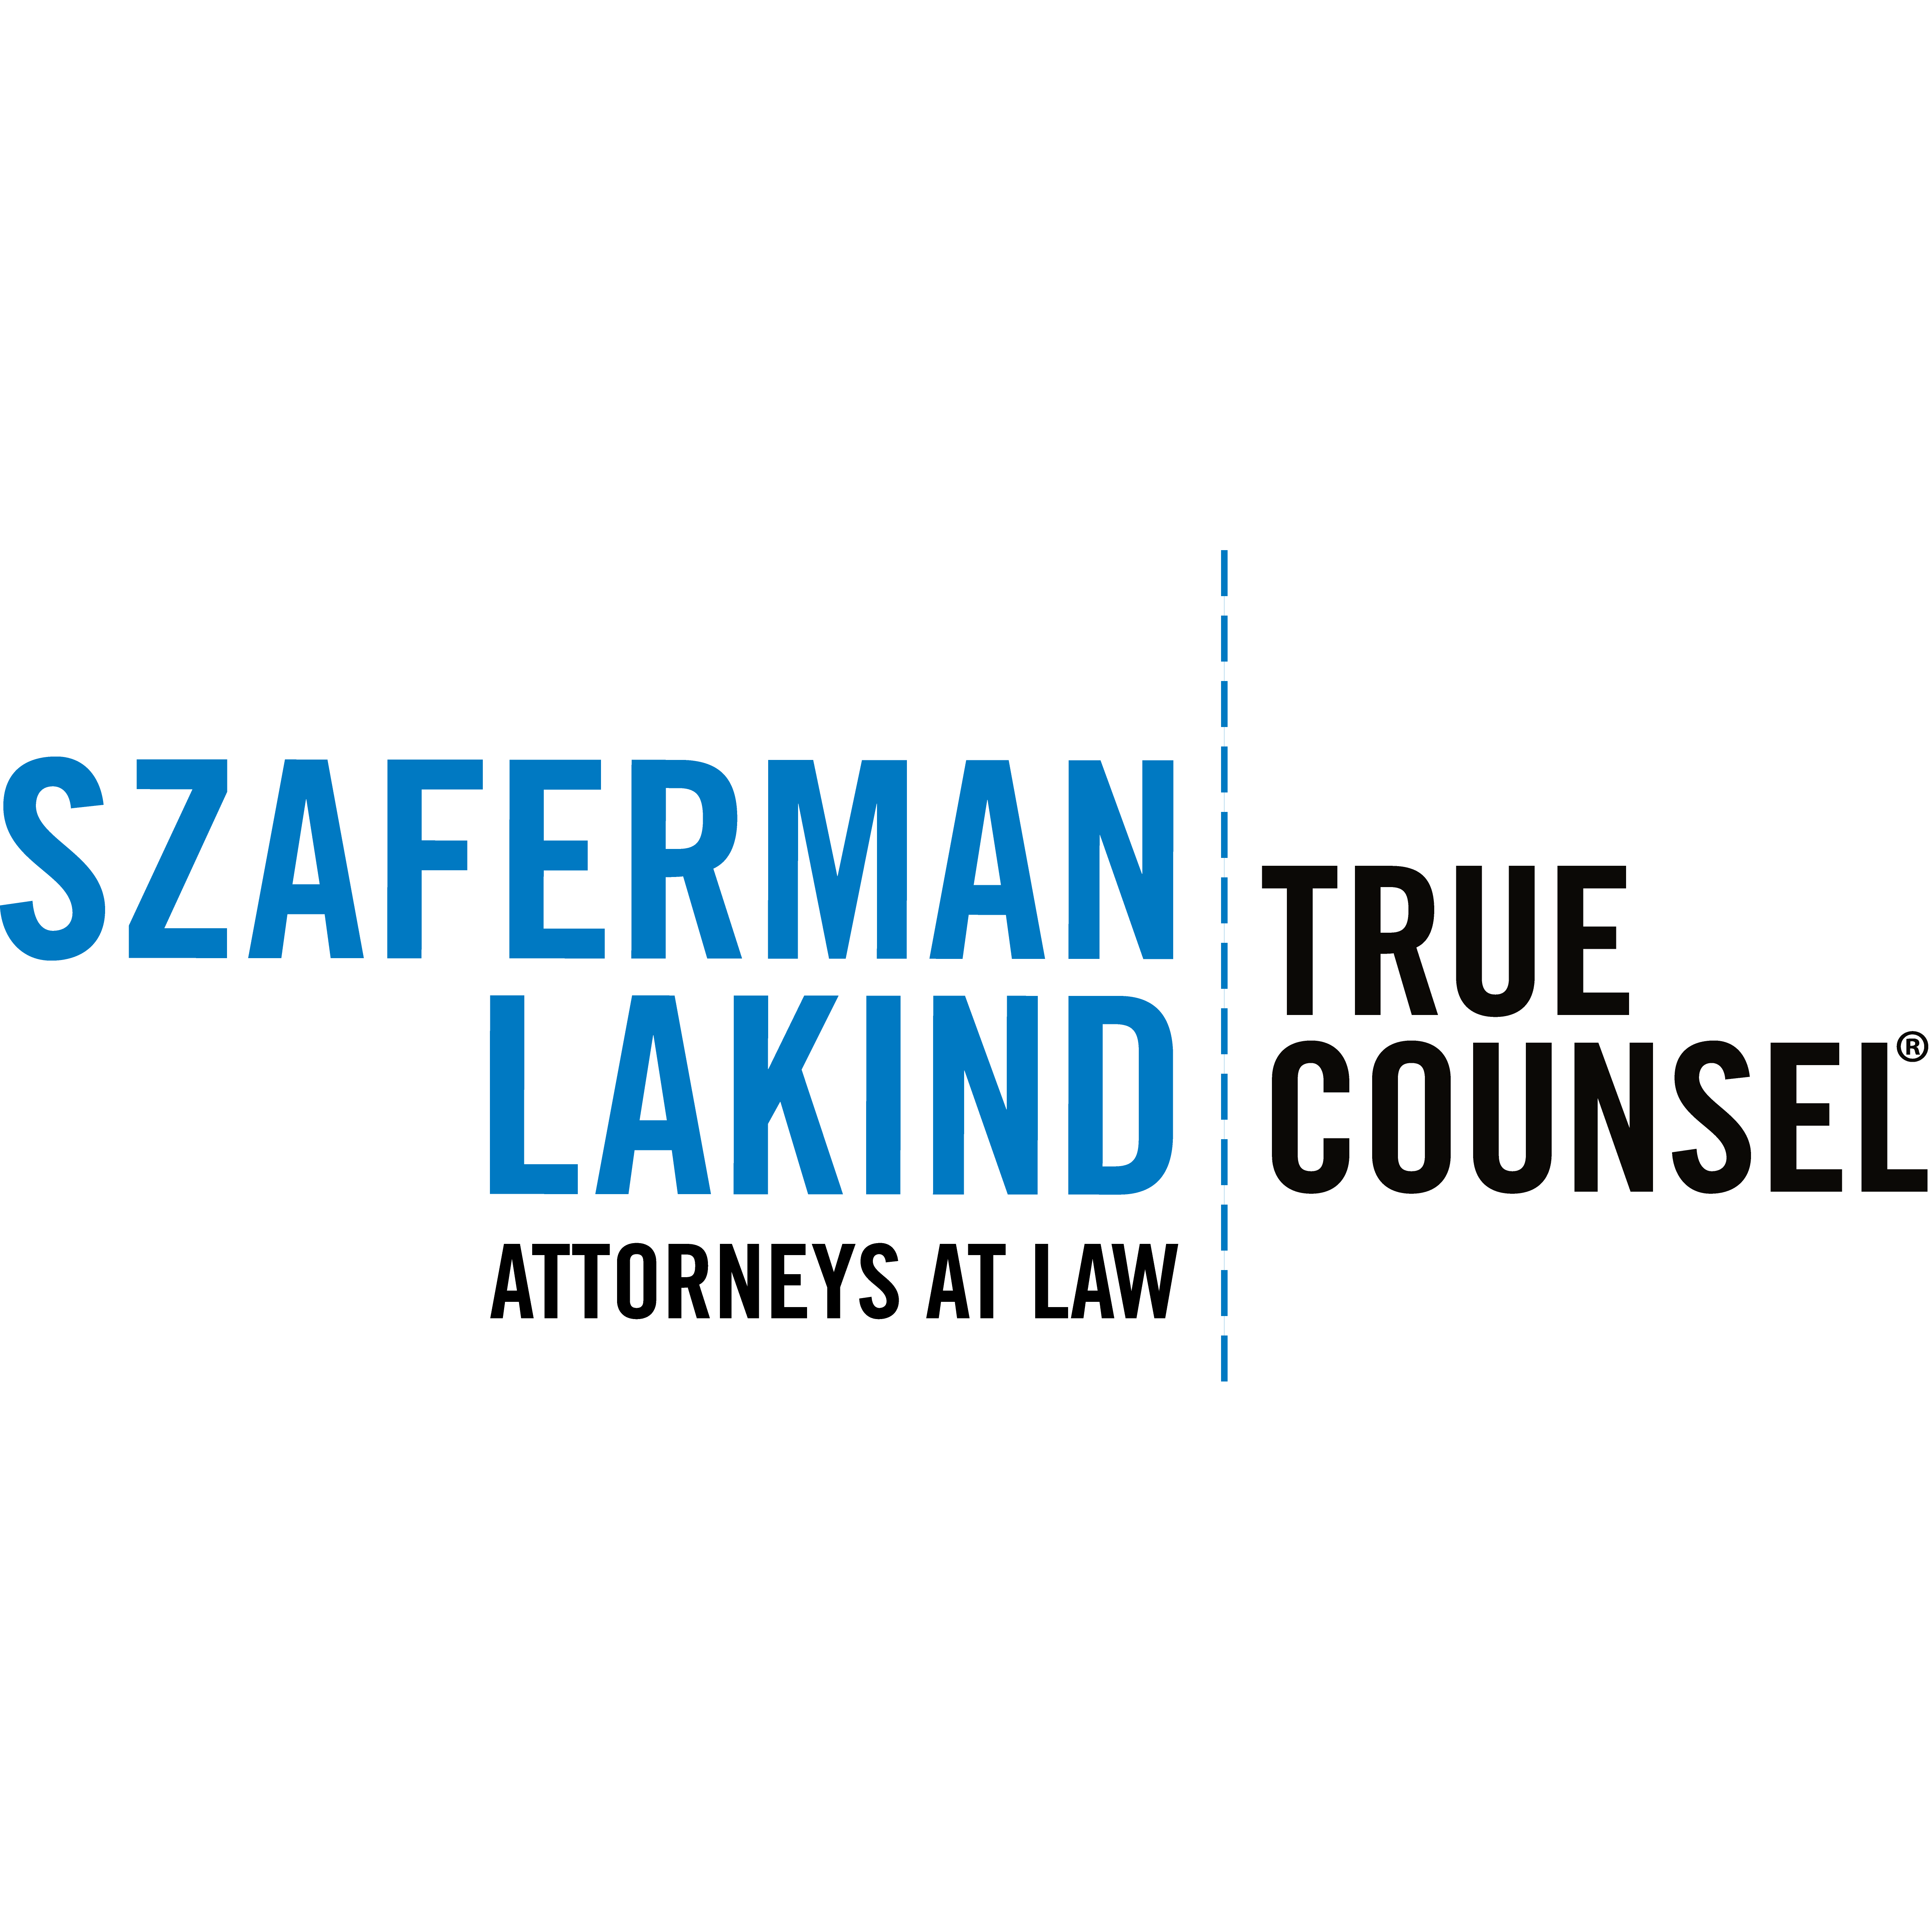 Szaferman, Lakind, Blumstein & Blader - Top Rated Law Firm - NY & NJ